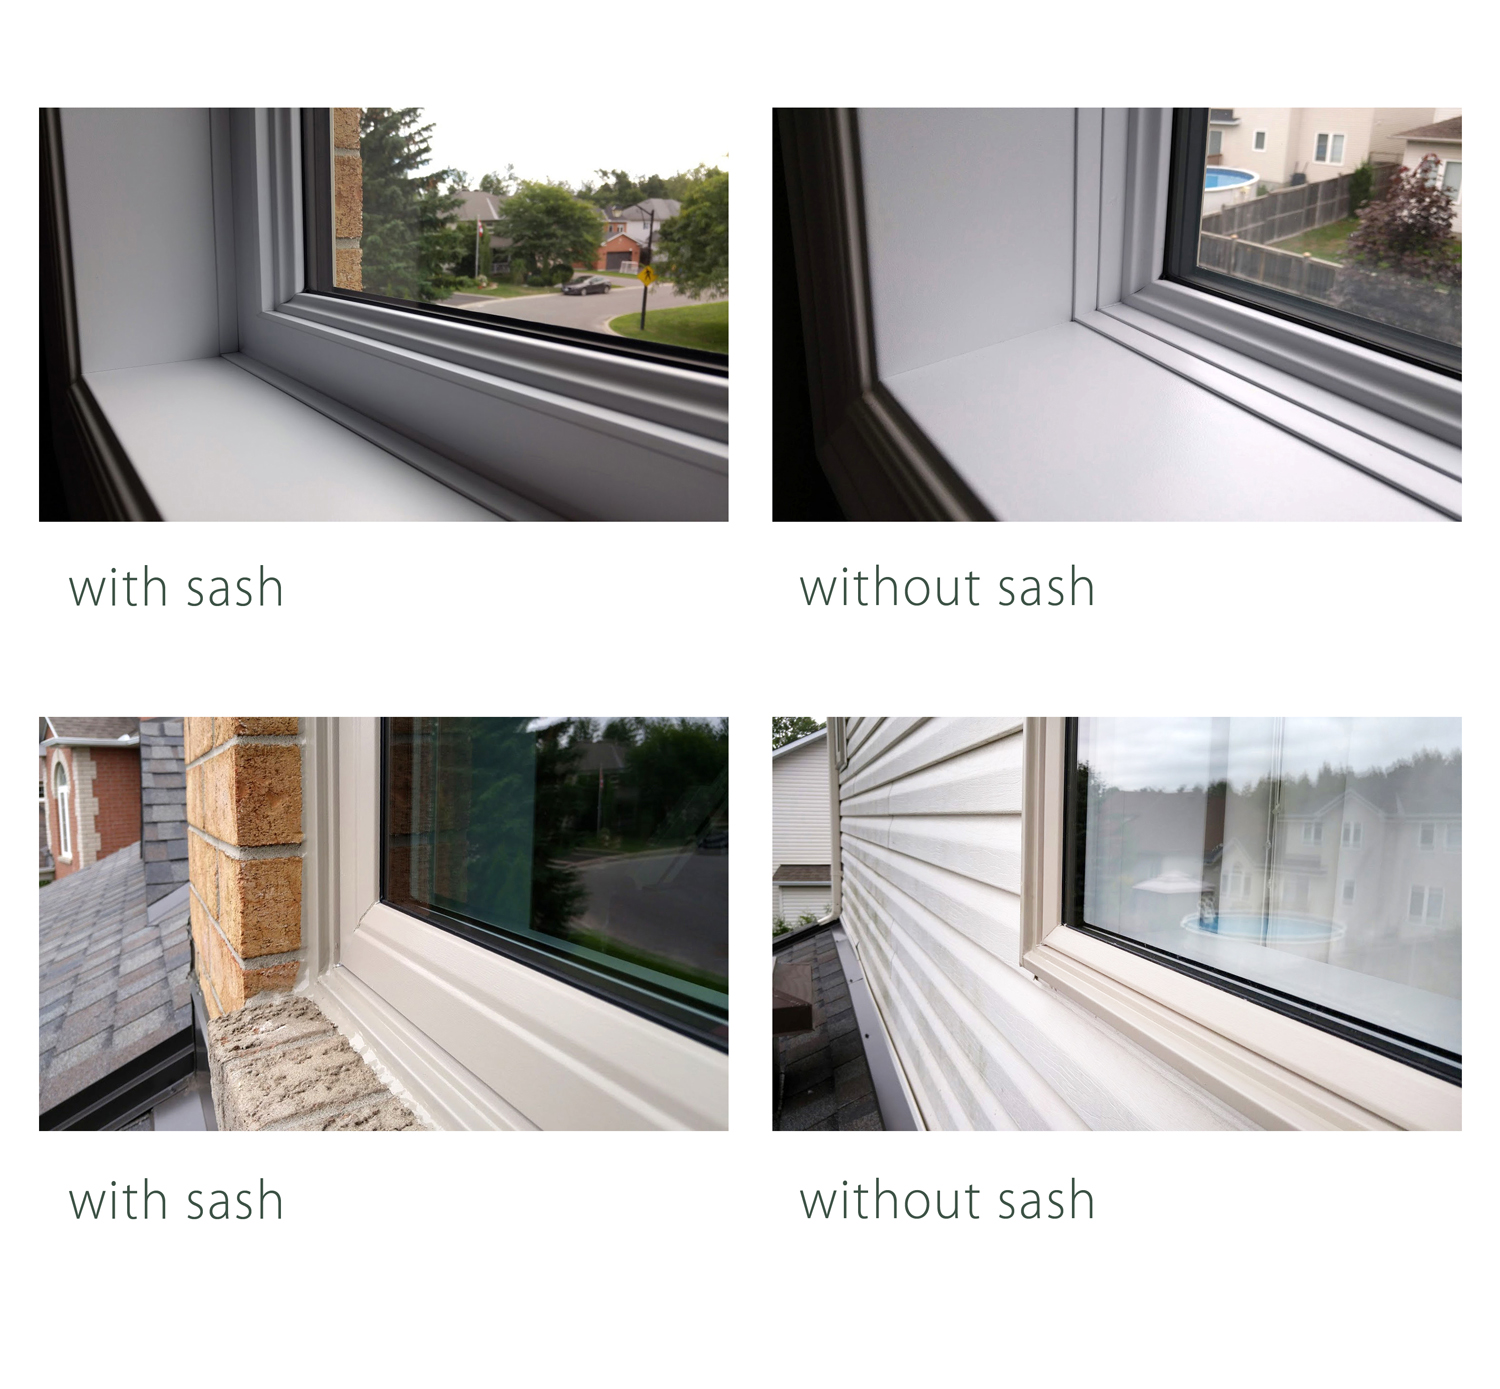 Sash vs no sash - interior and exterior views